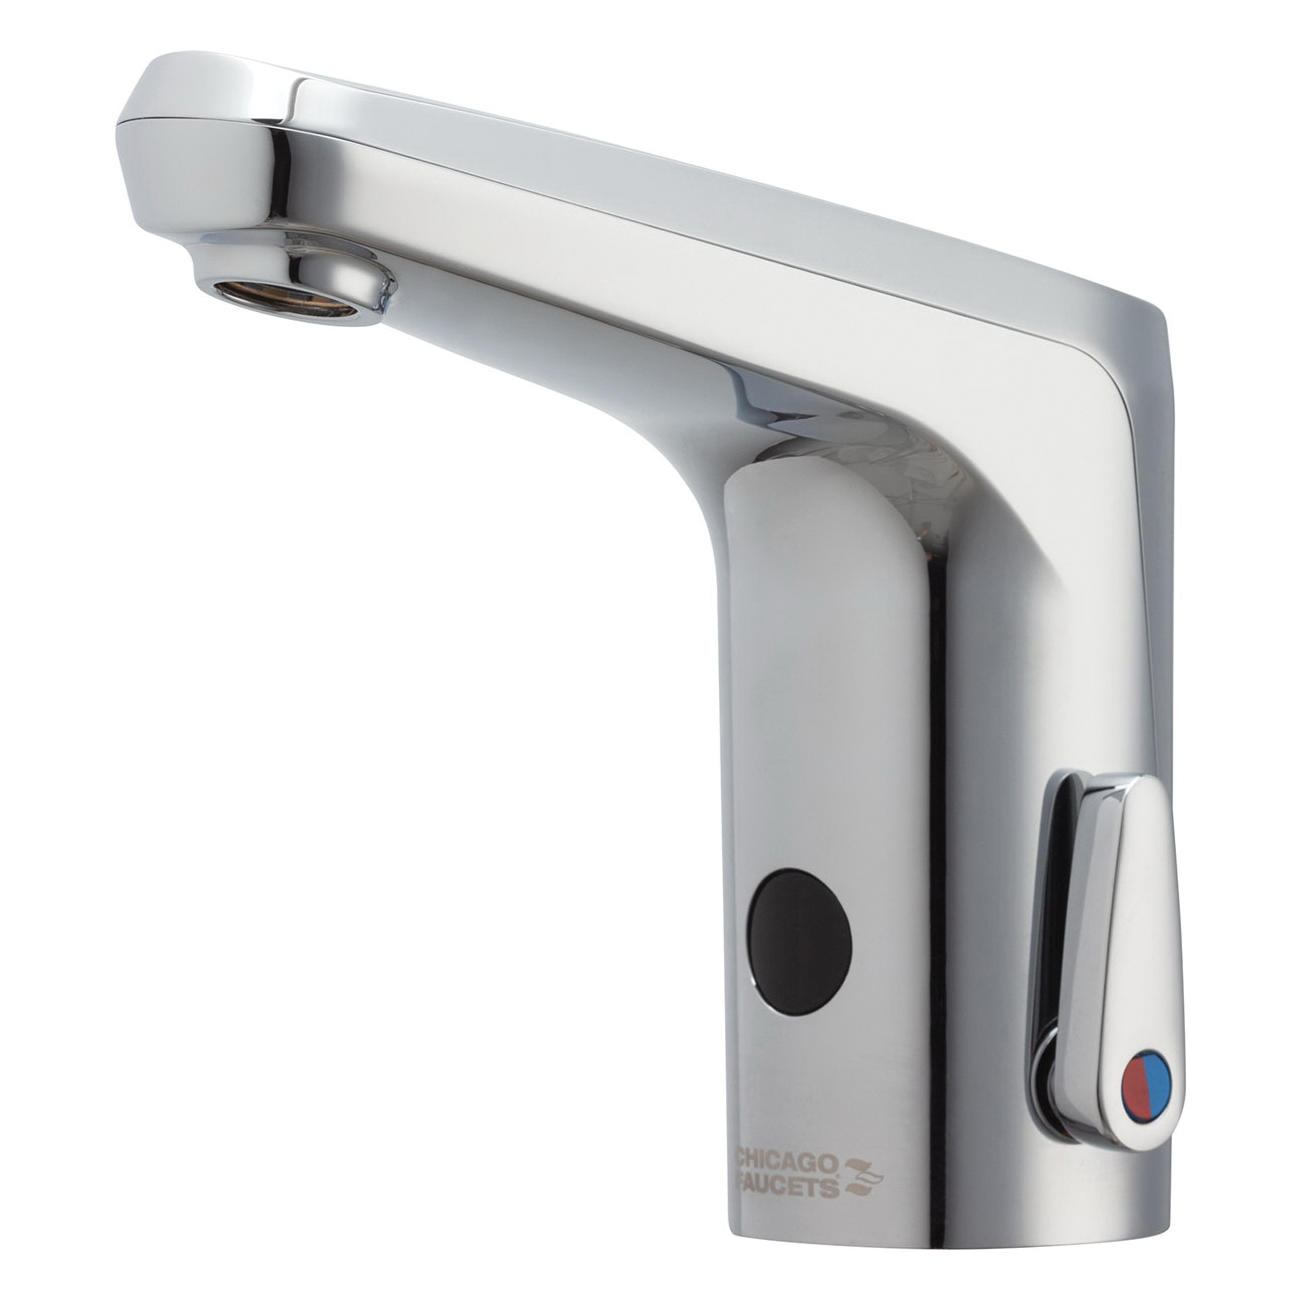 Chicago Faucet® E80-A11A-16ABCP E-Tronic® 80 Lavatory Faucet With Dual-Beam Infrared Sensor, Commercial, 0.5 gpm Flow Rate, 4-7/8 in H Spout, 1 Faucet Hole, Polished Chrome, Function: Touchless